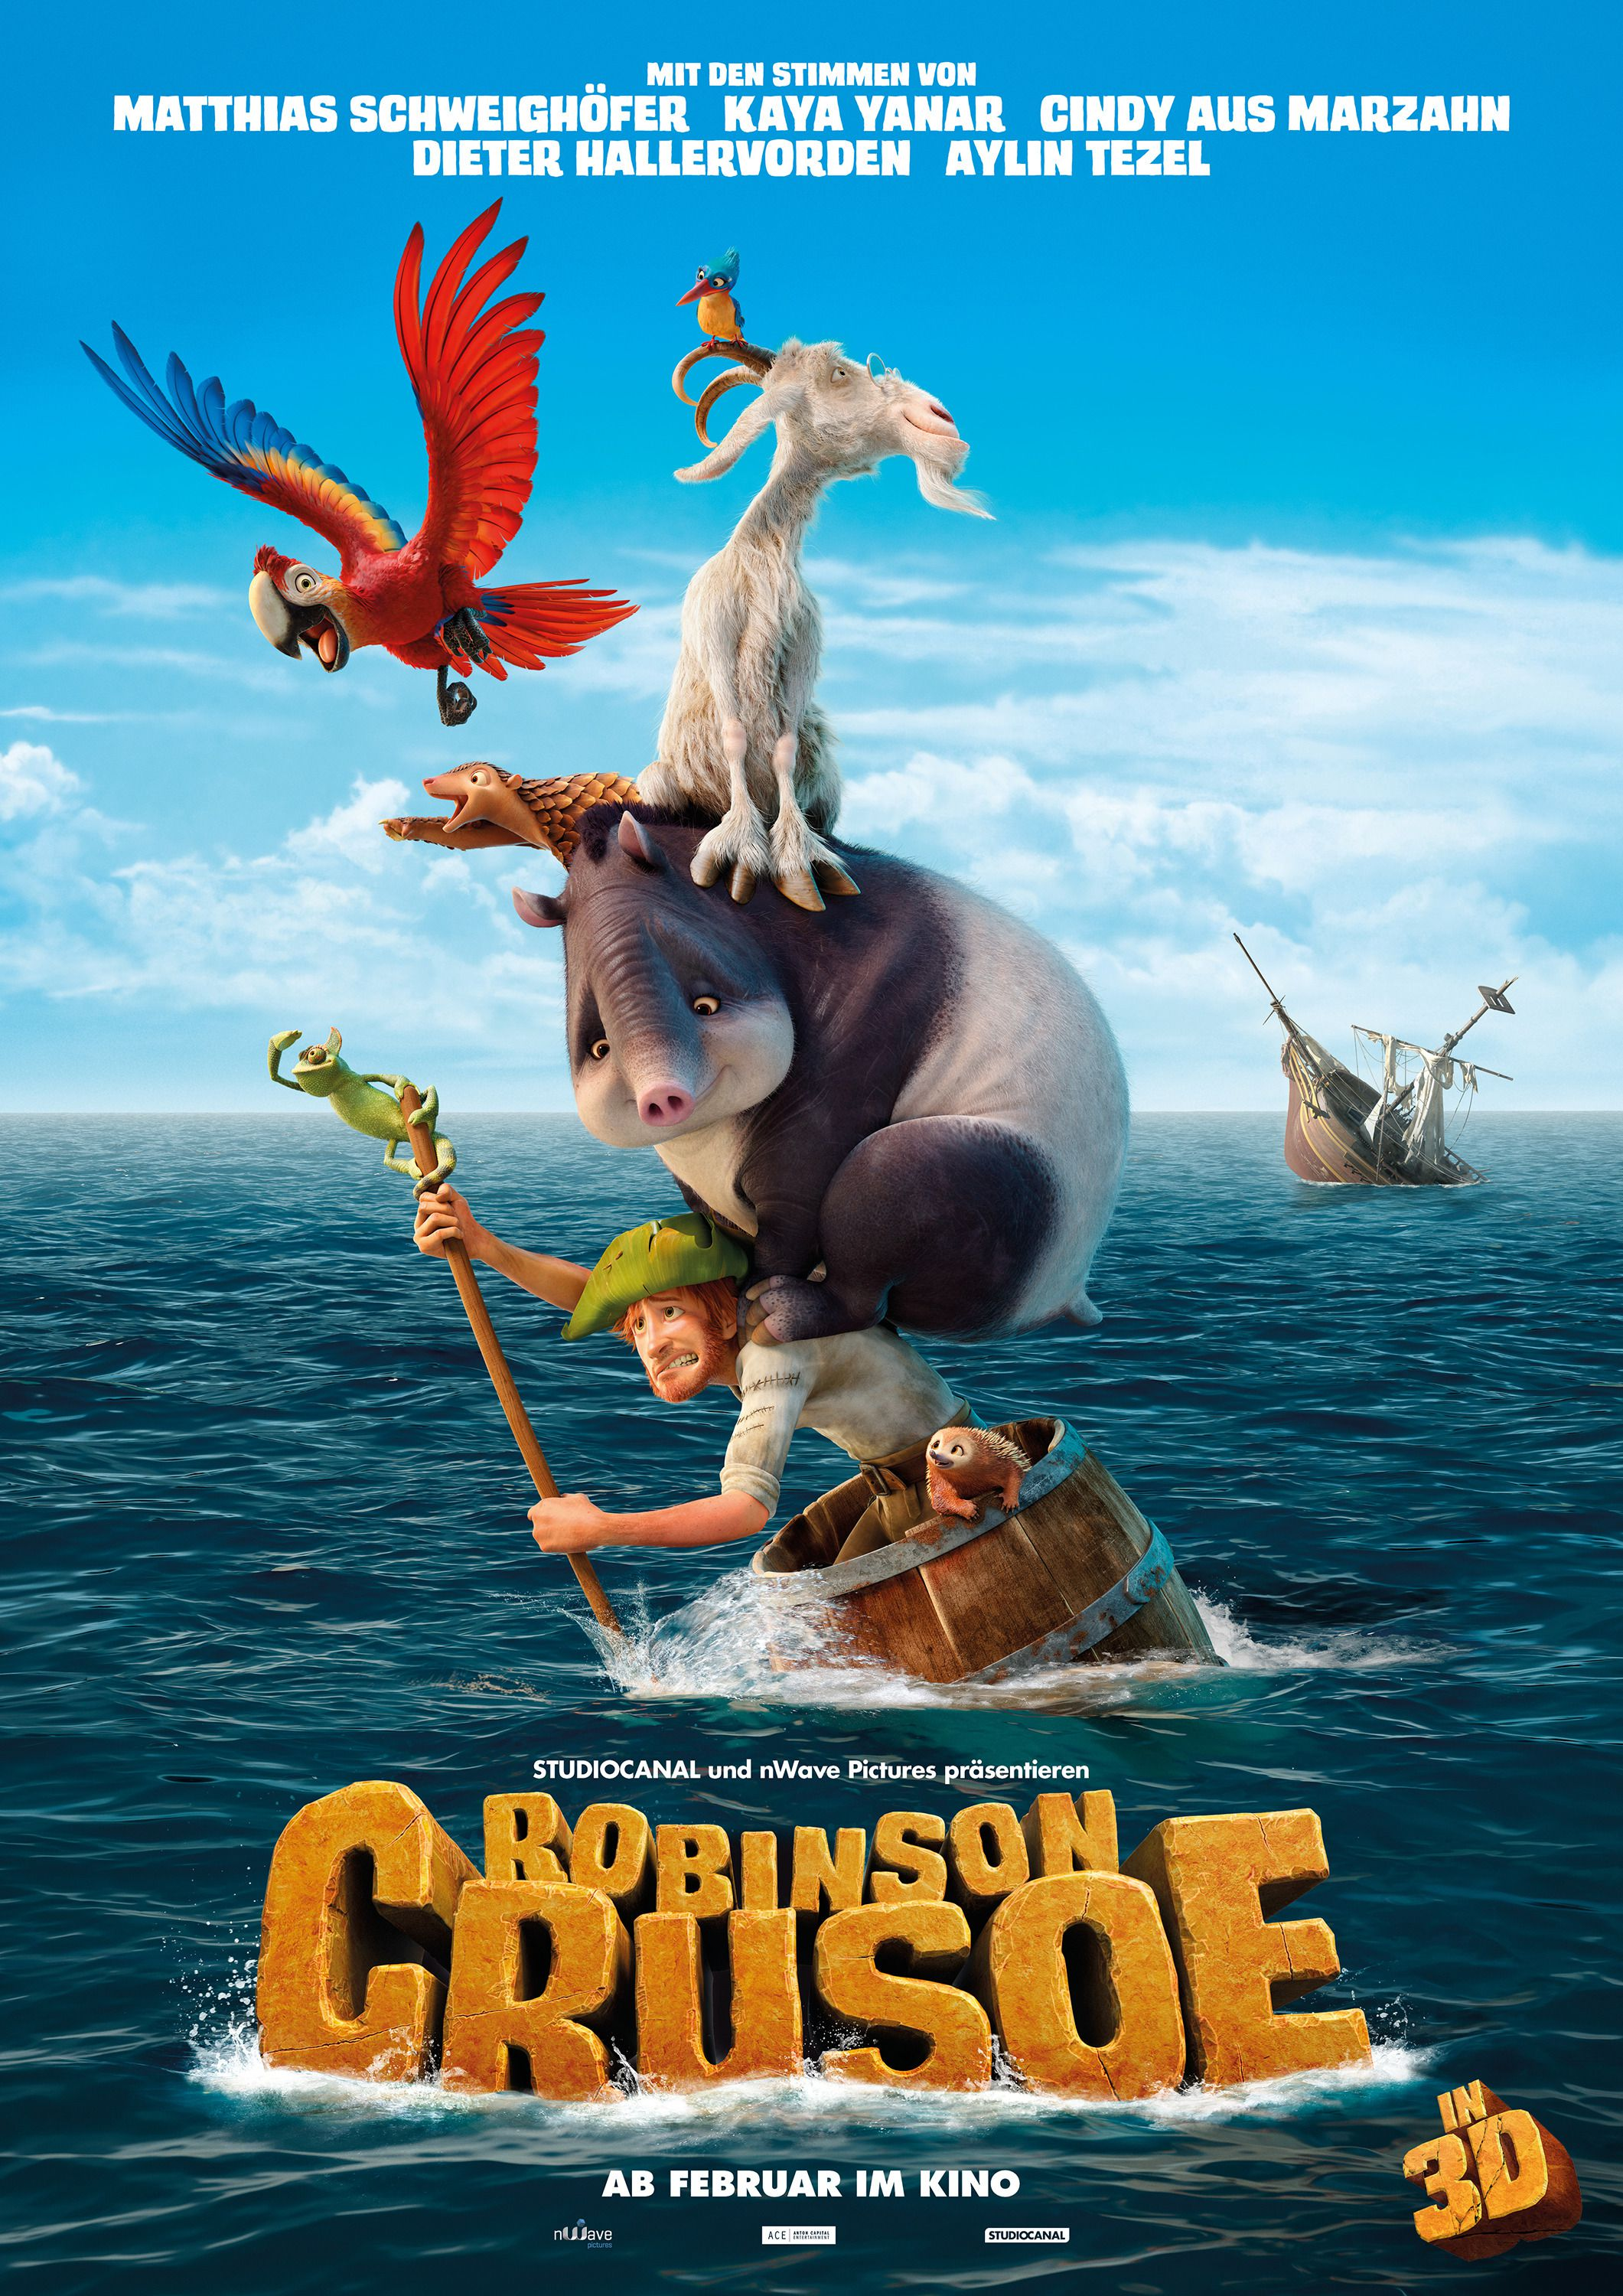 The Wild Life (2016) Robinson Crusoe